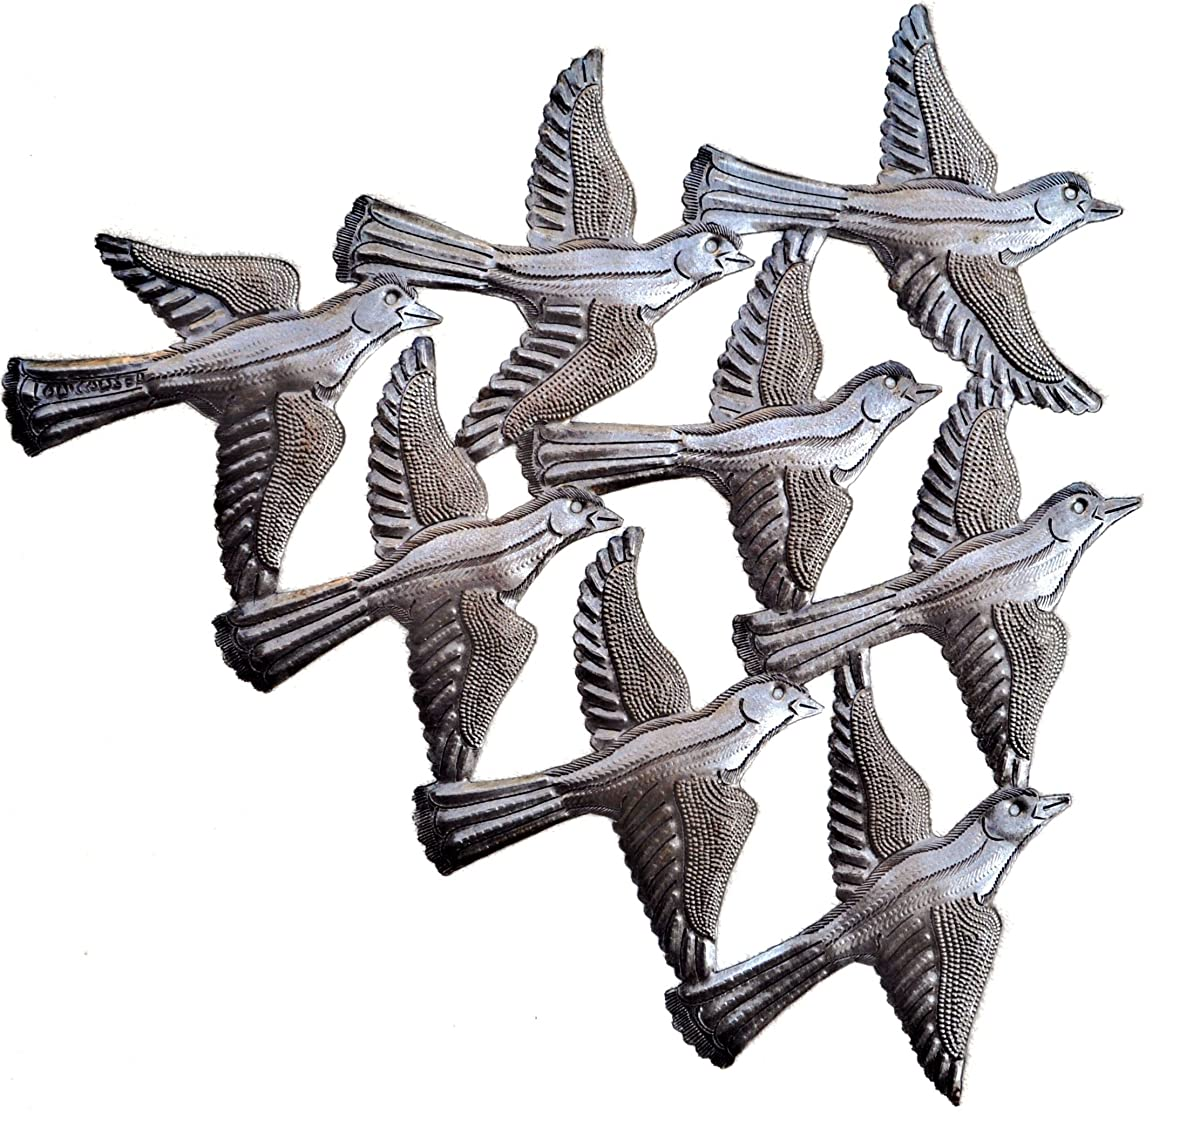 "Spring Garden Flock of Birds Wall Art, Haiti Metal Art, Recycled Steel, Handmade 15.5"" X 12.5"""